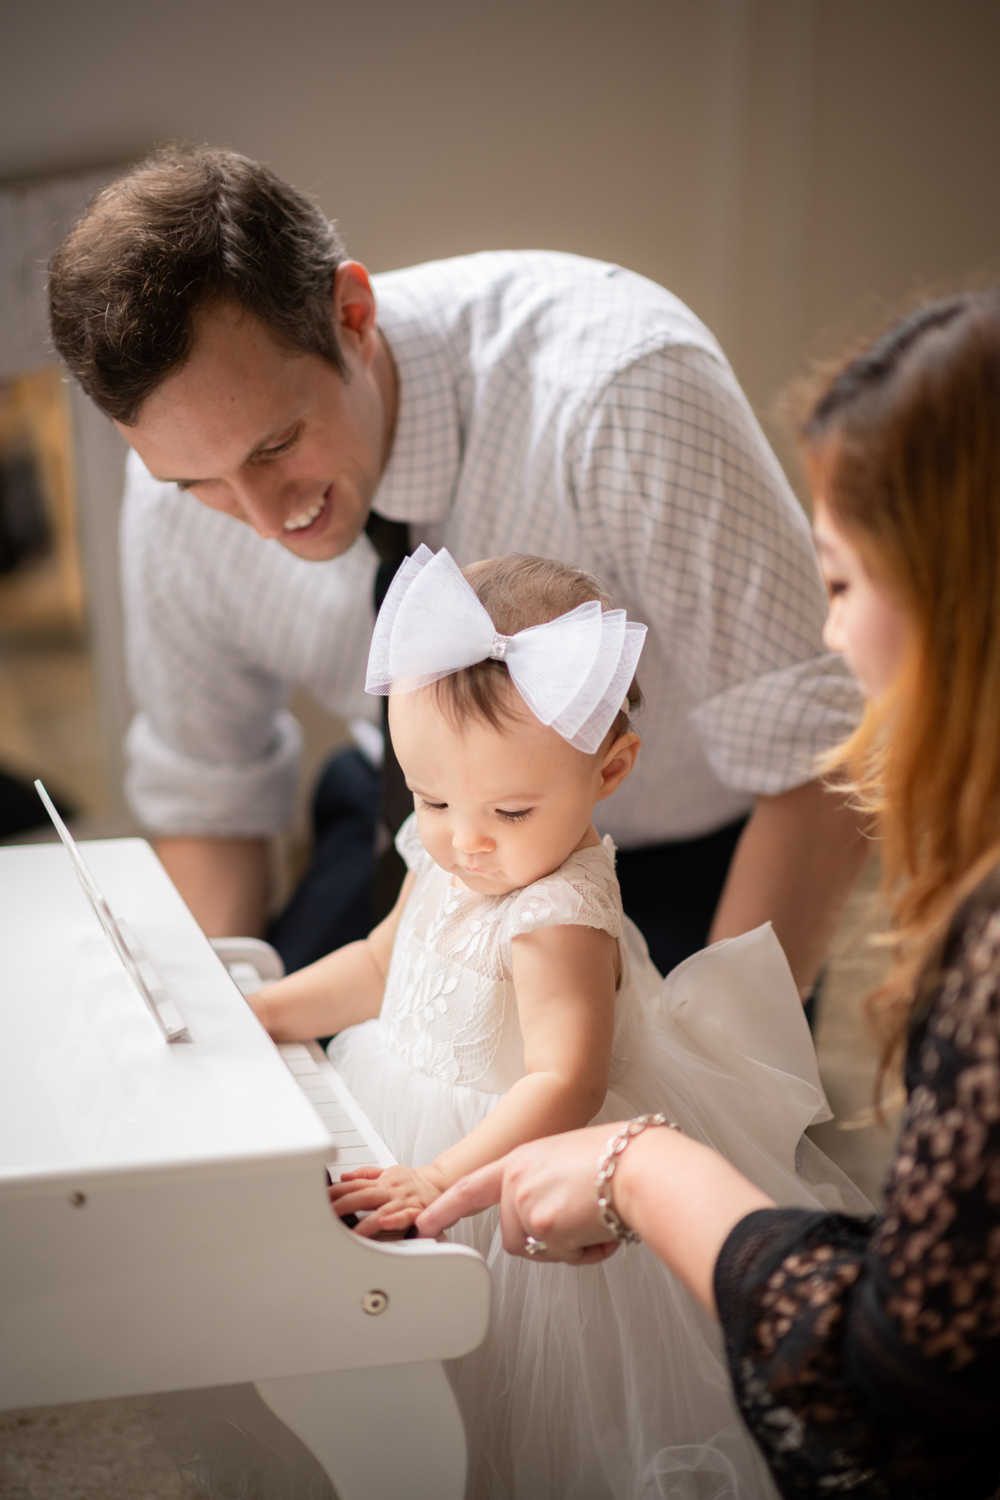 Parents play the piano with their one-year-old daughter in Chicago photo studio.